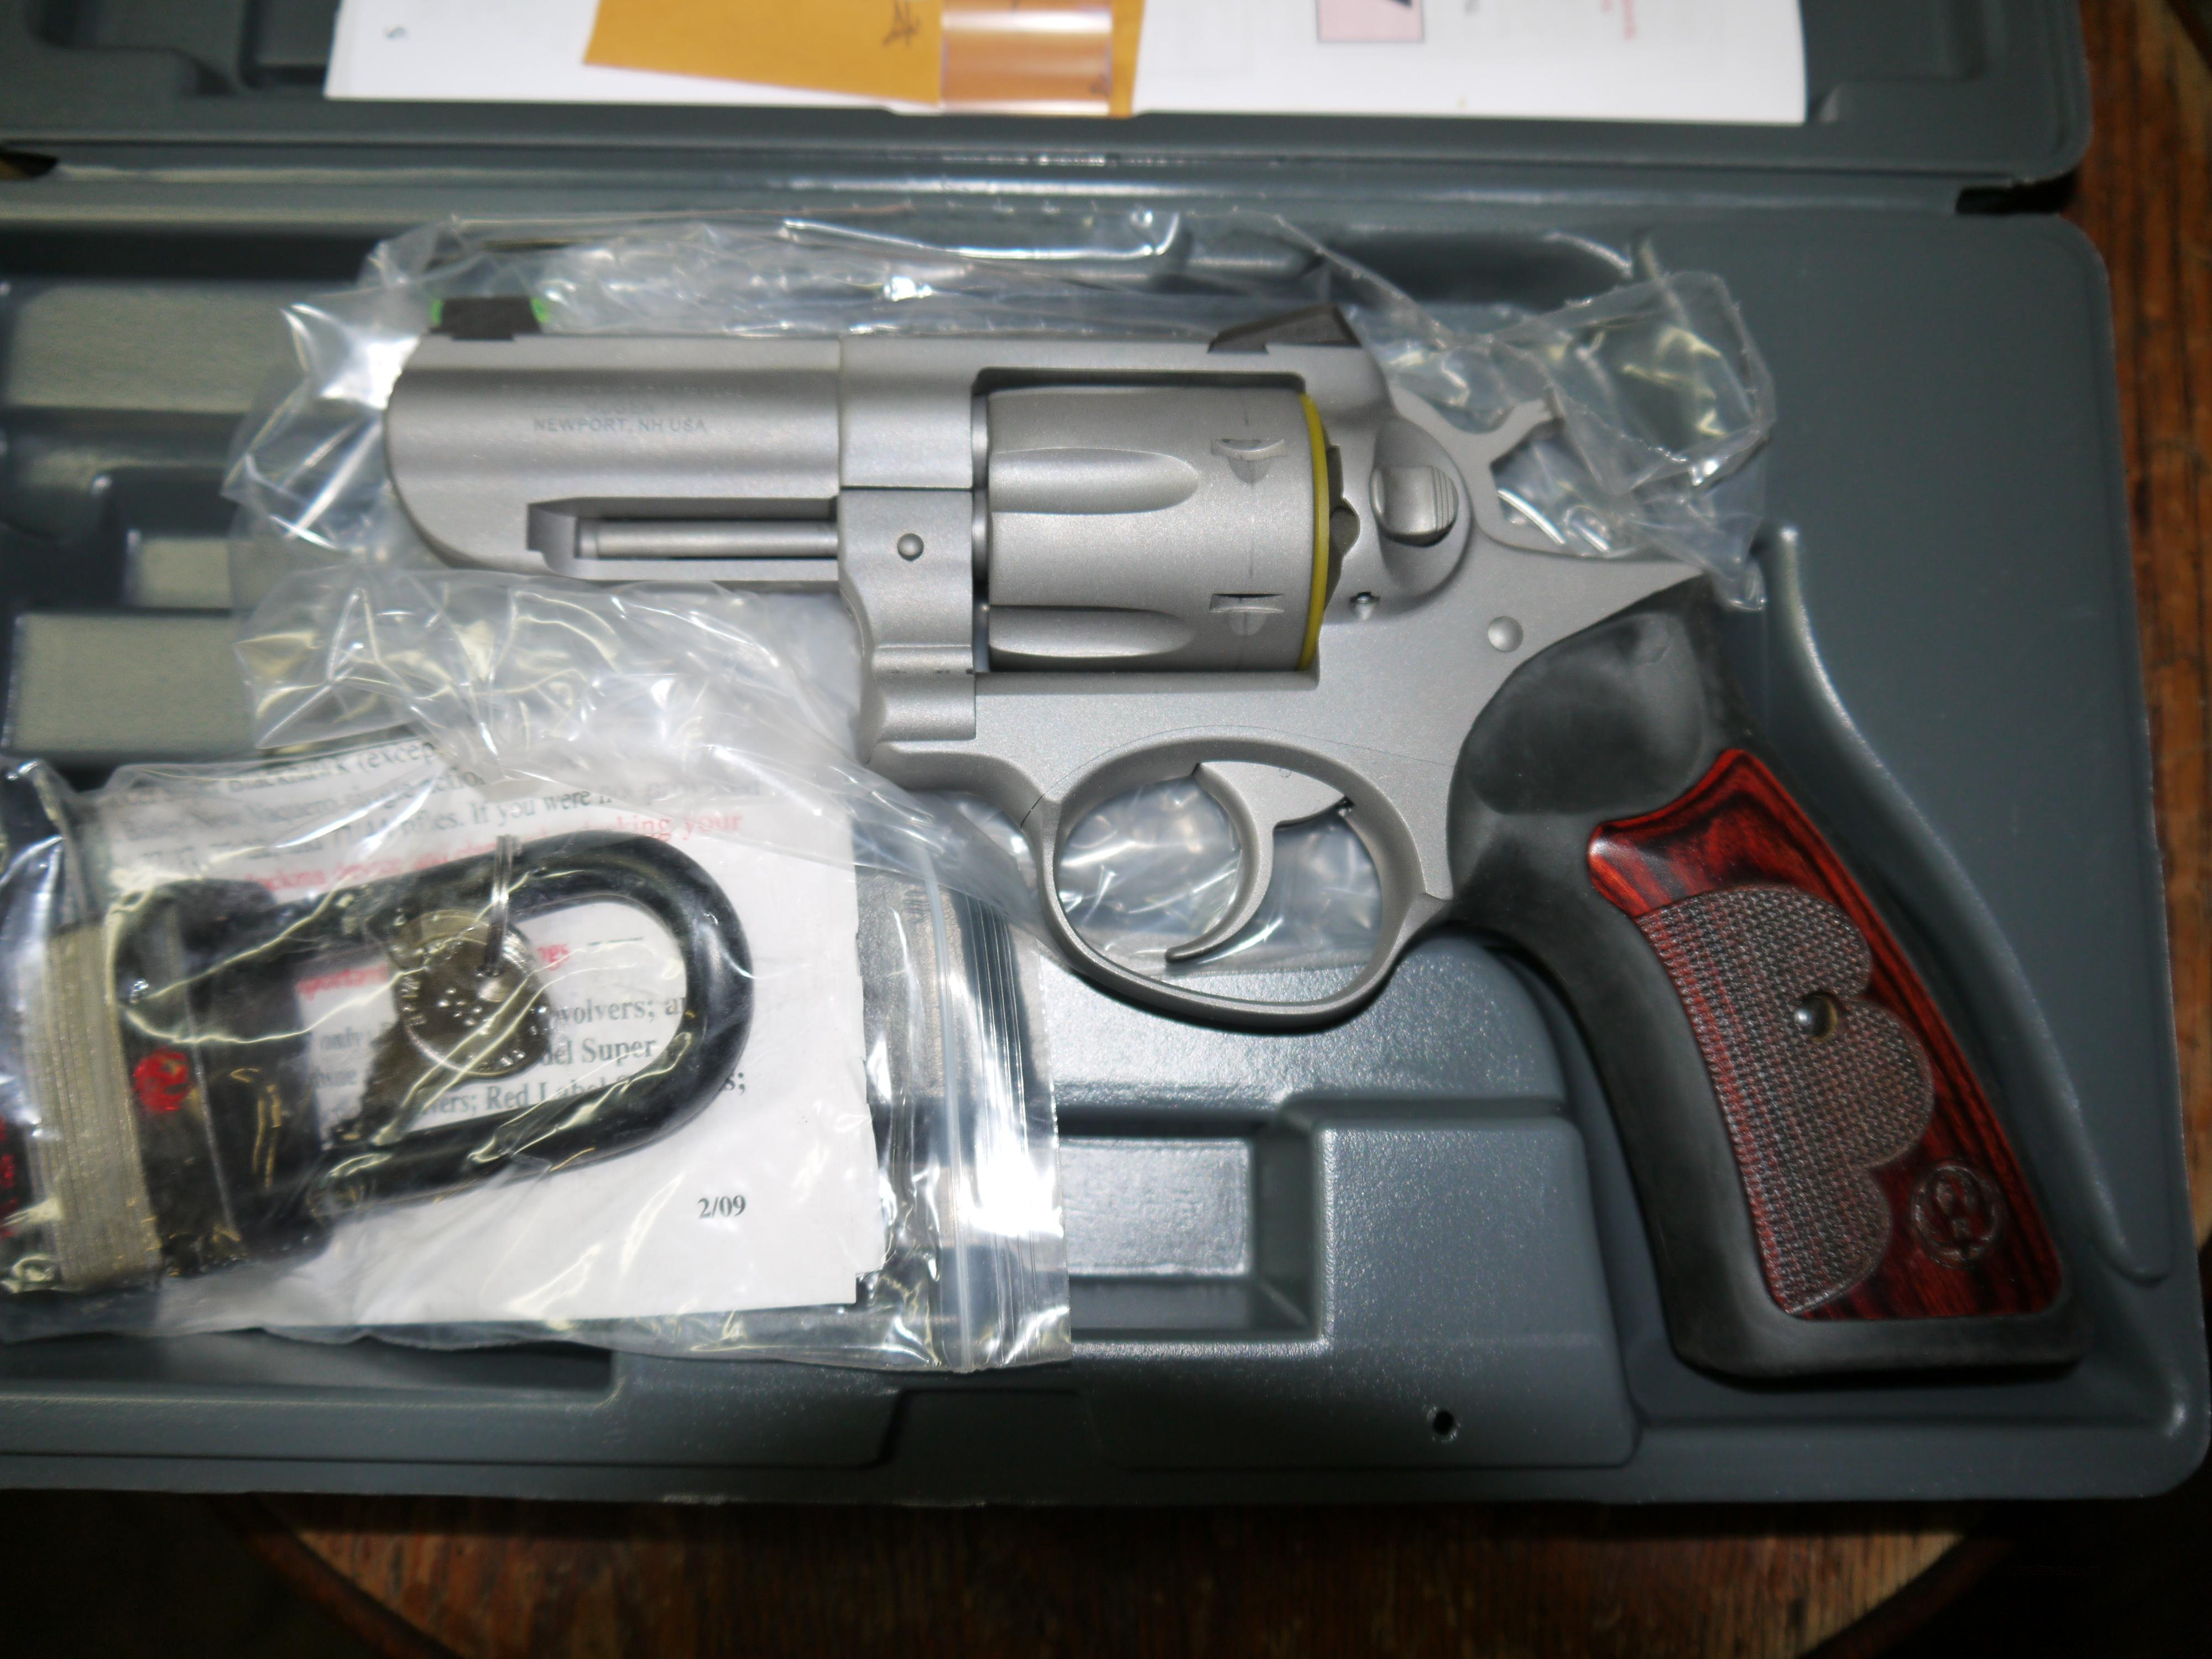 Ruger gp100 wiley clapp talo limited edition 01752 for sale 971910564